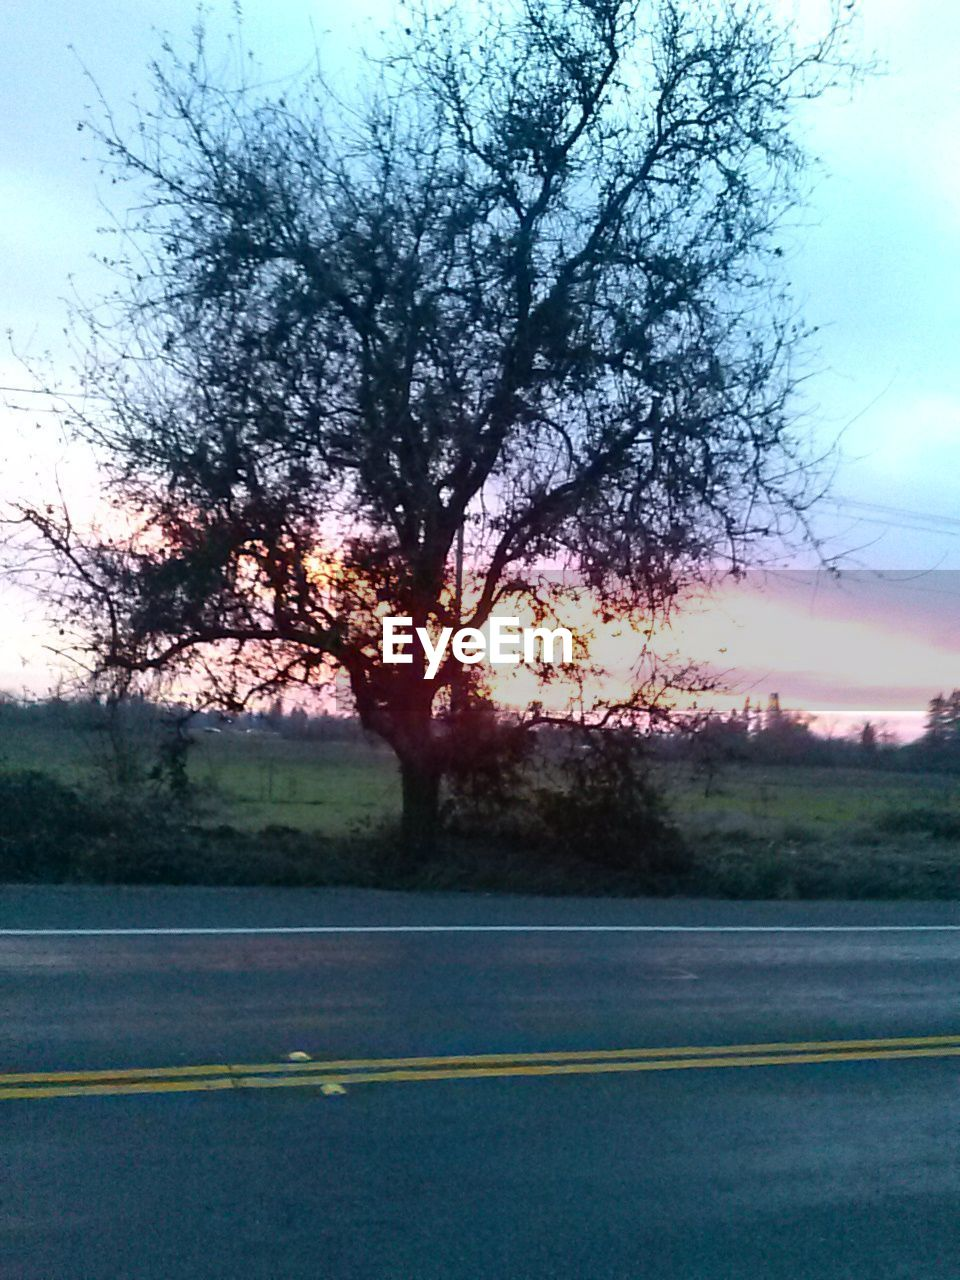 tree, road, no people, sky, outdoors, nature, day, beauty in nature, bare tree, scenics